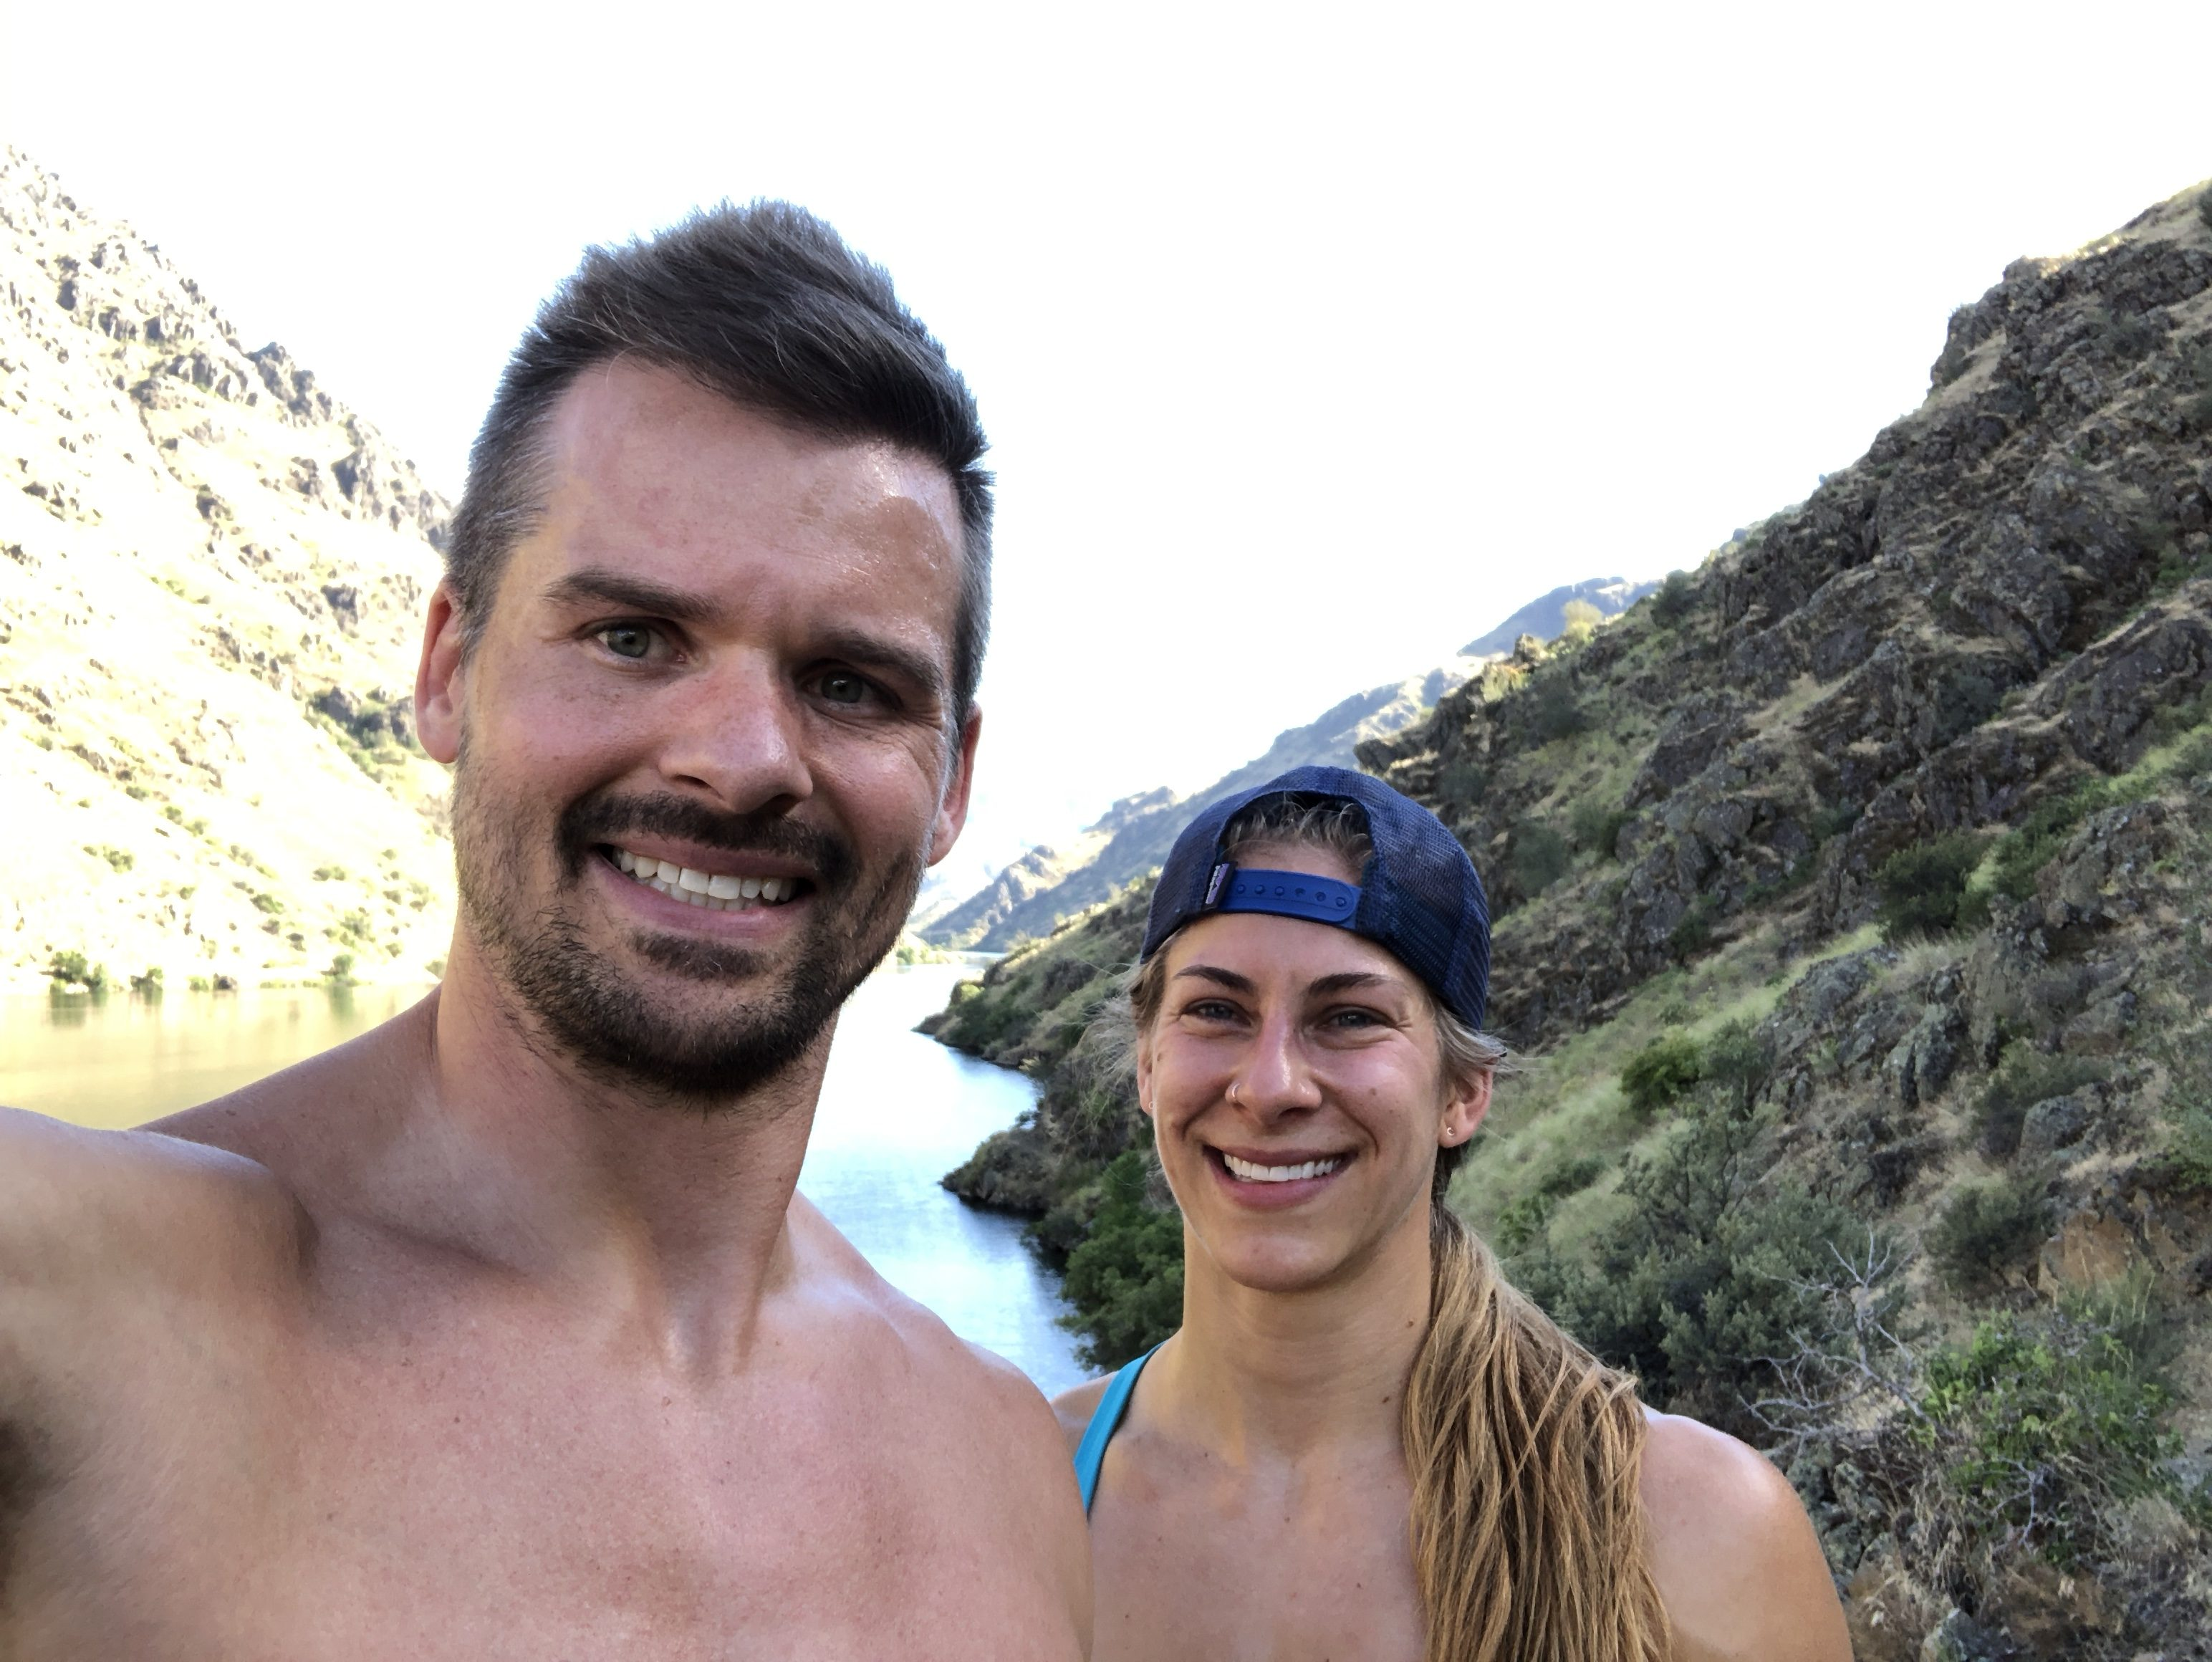 Joe Bauer and Emily Kramer running on the Hells Canyon trail